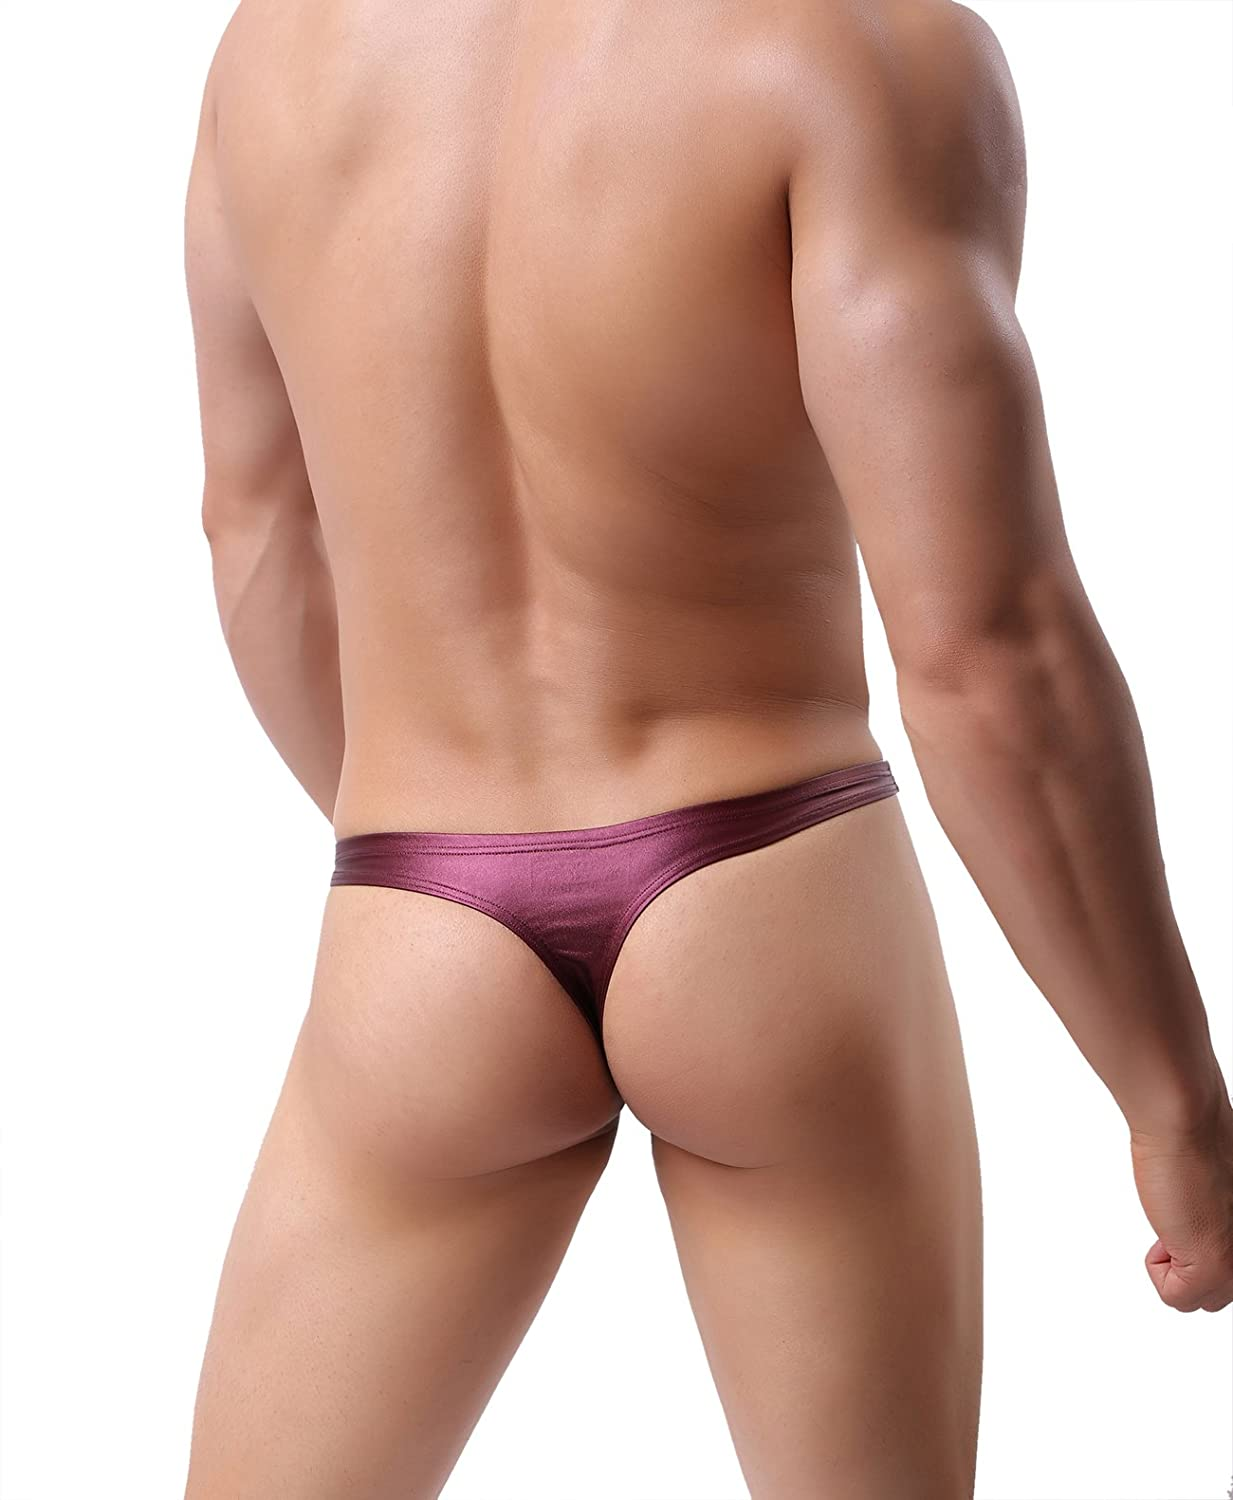 b34546579e Brave Person Men s Fashion Faux Leather Thong Underwear Sexy T-Back B1161  at Amazon Men s Clothing store